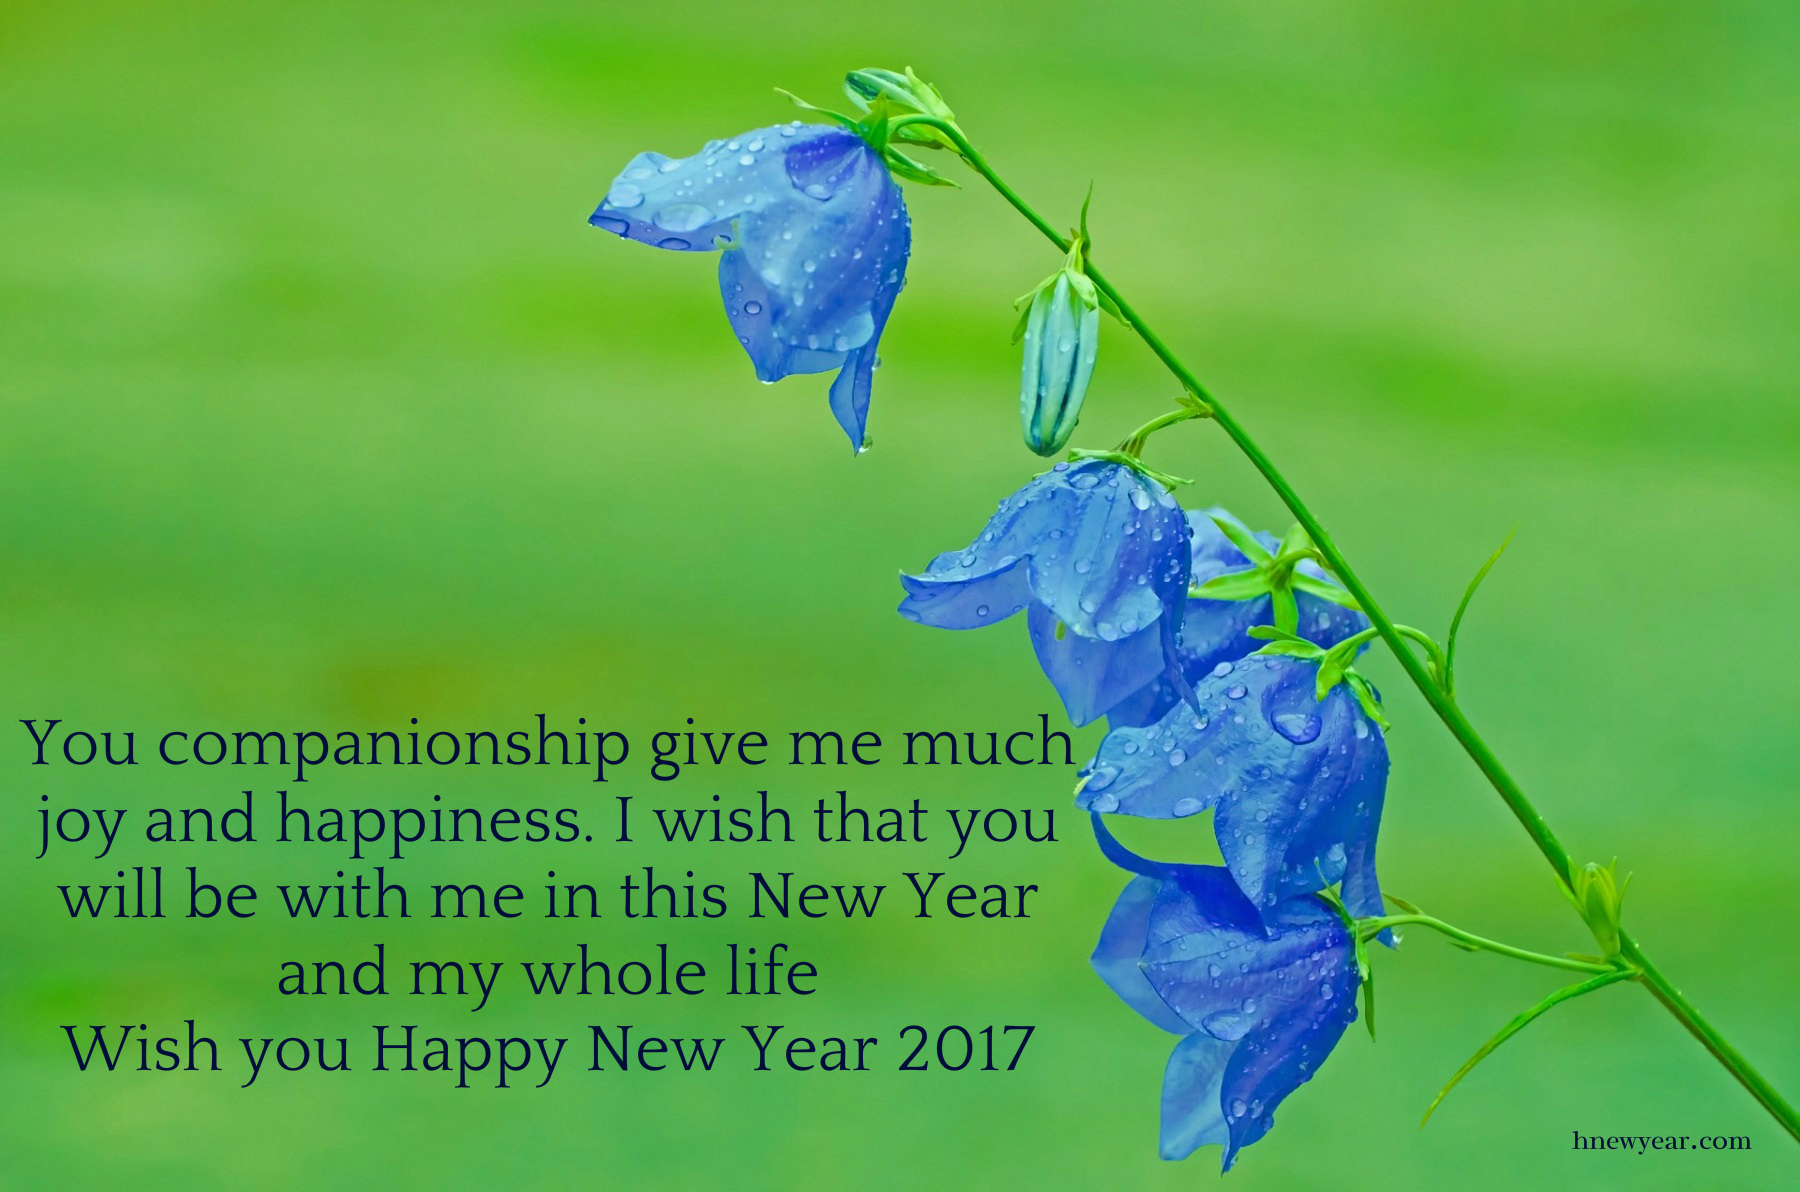 New Year Wishes 2017 For Someone Special 21